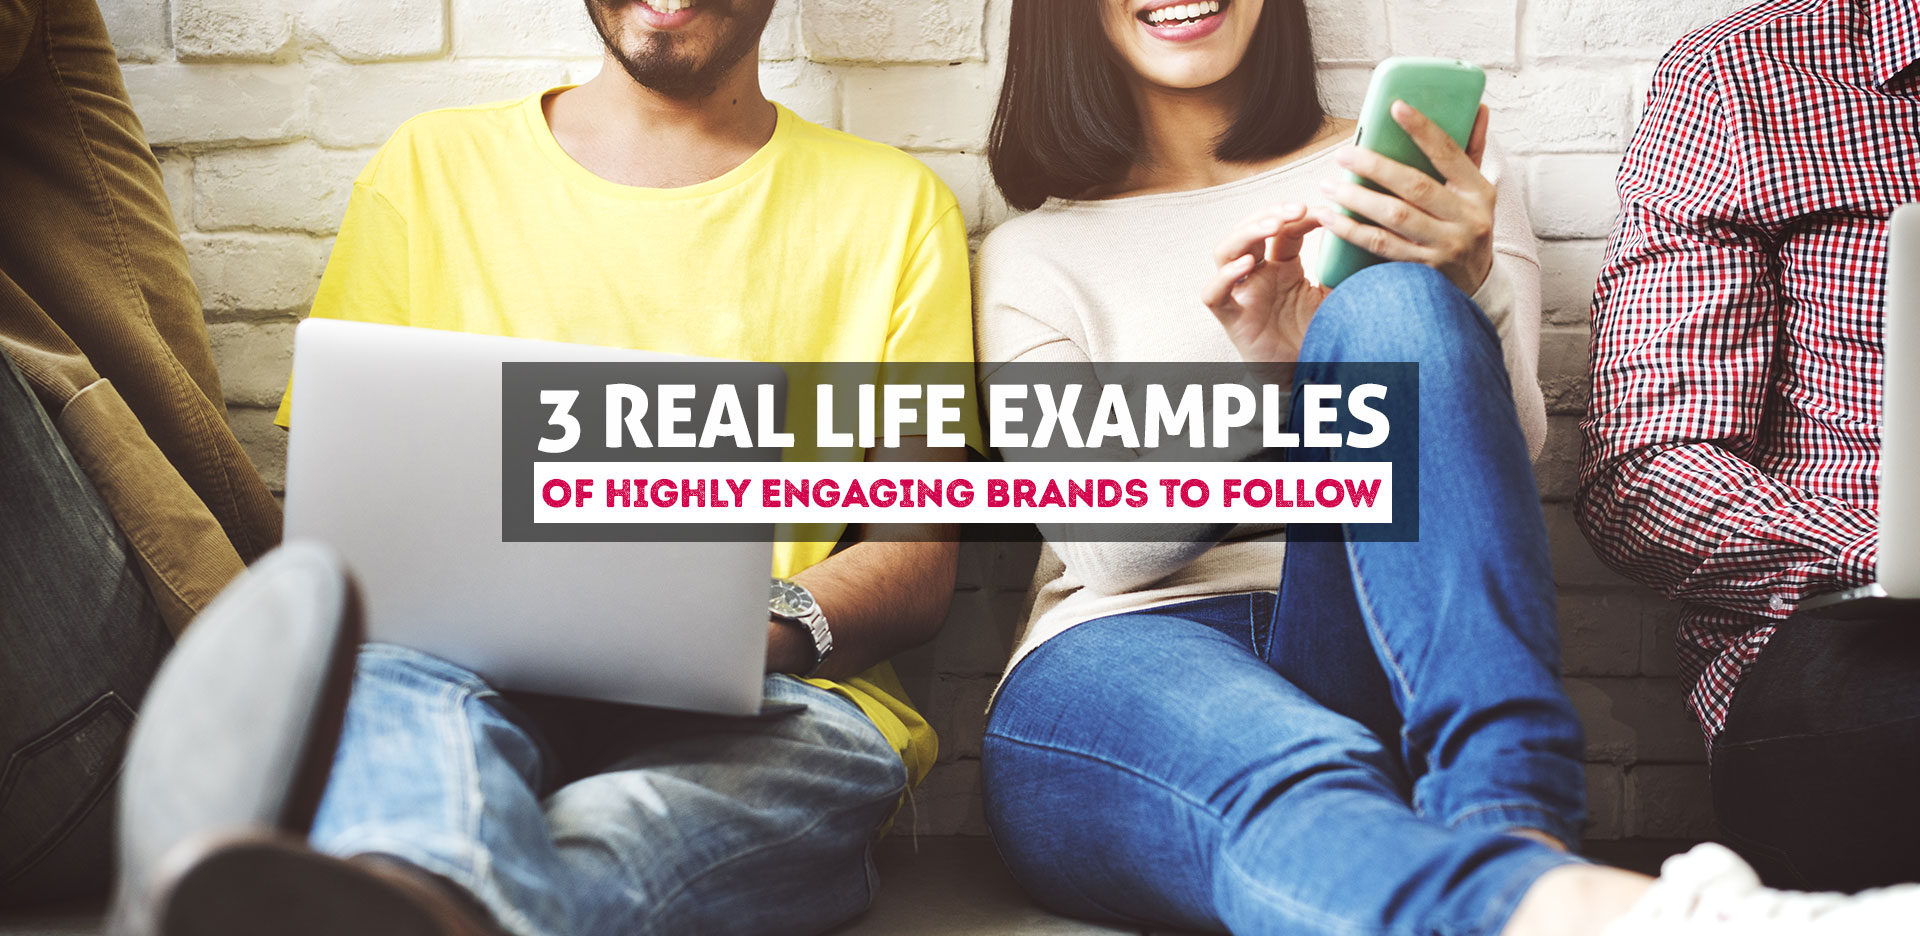 3-real-life-examples-Of-Highly-Engaging-Brands-to-Follow